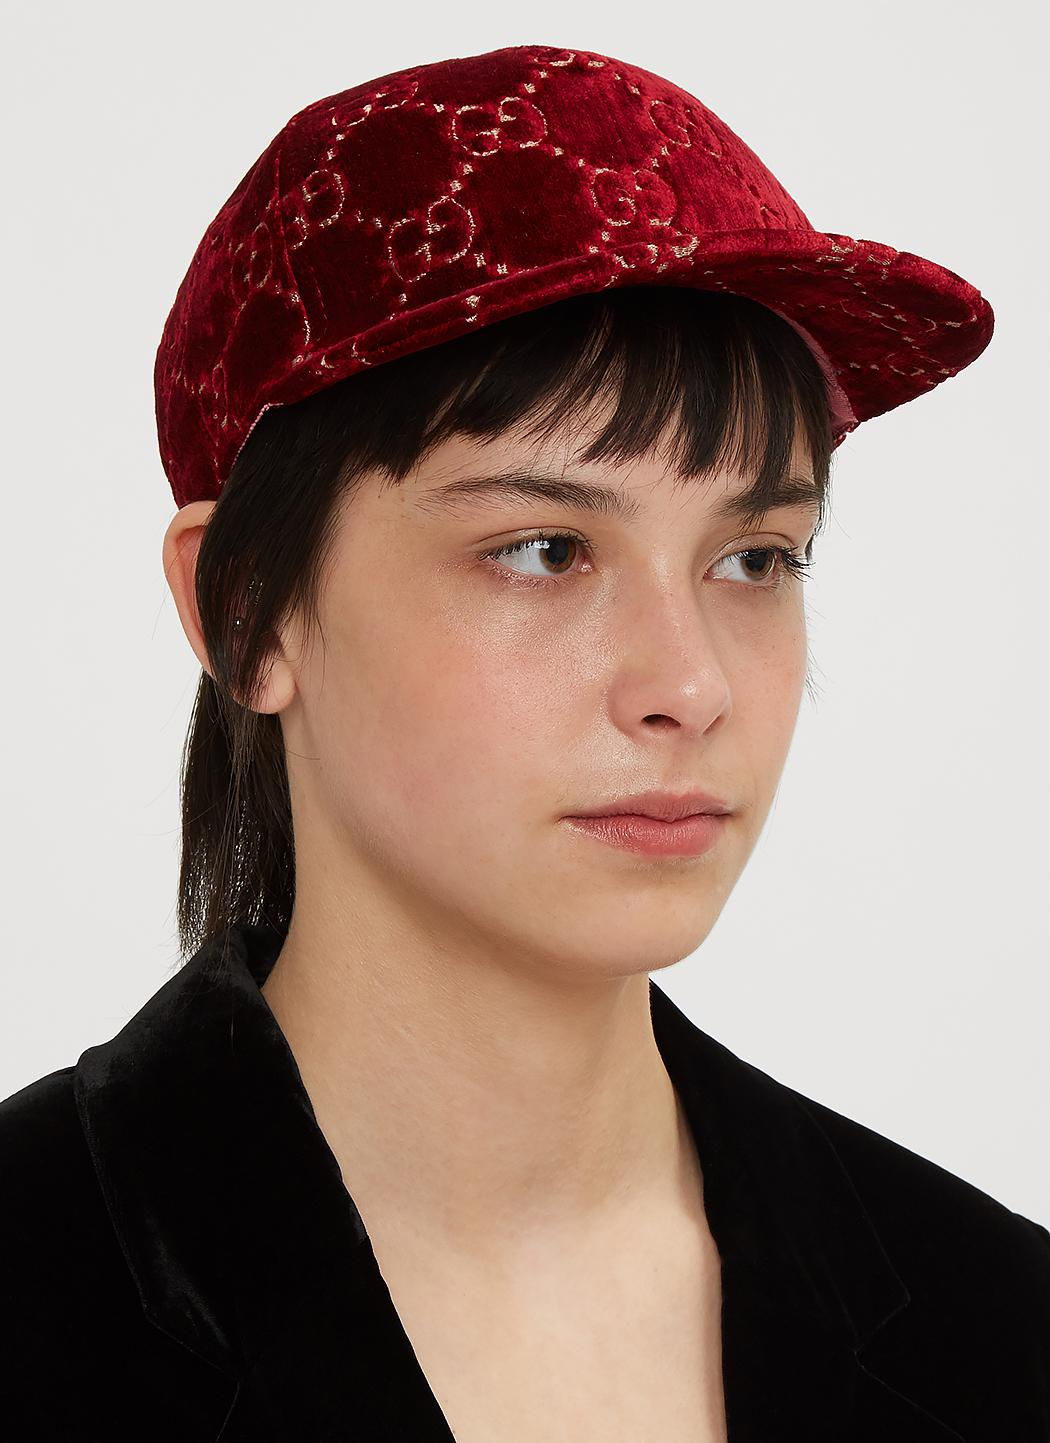 baf7ac7554d99 Gucci - Red GG Velvet Baseball Cap In Burgundy - Lyst. View fullscreen